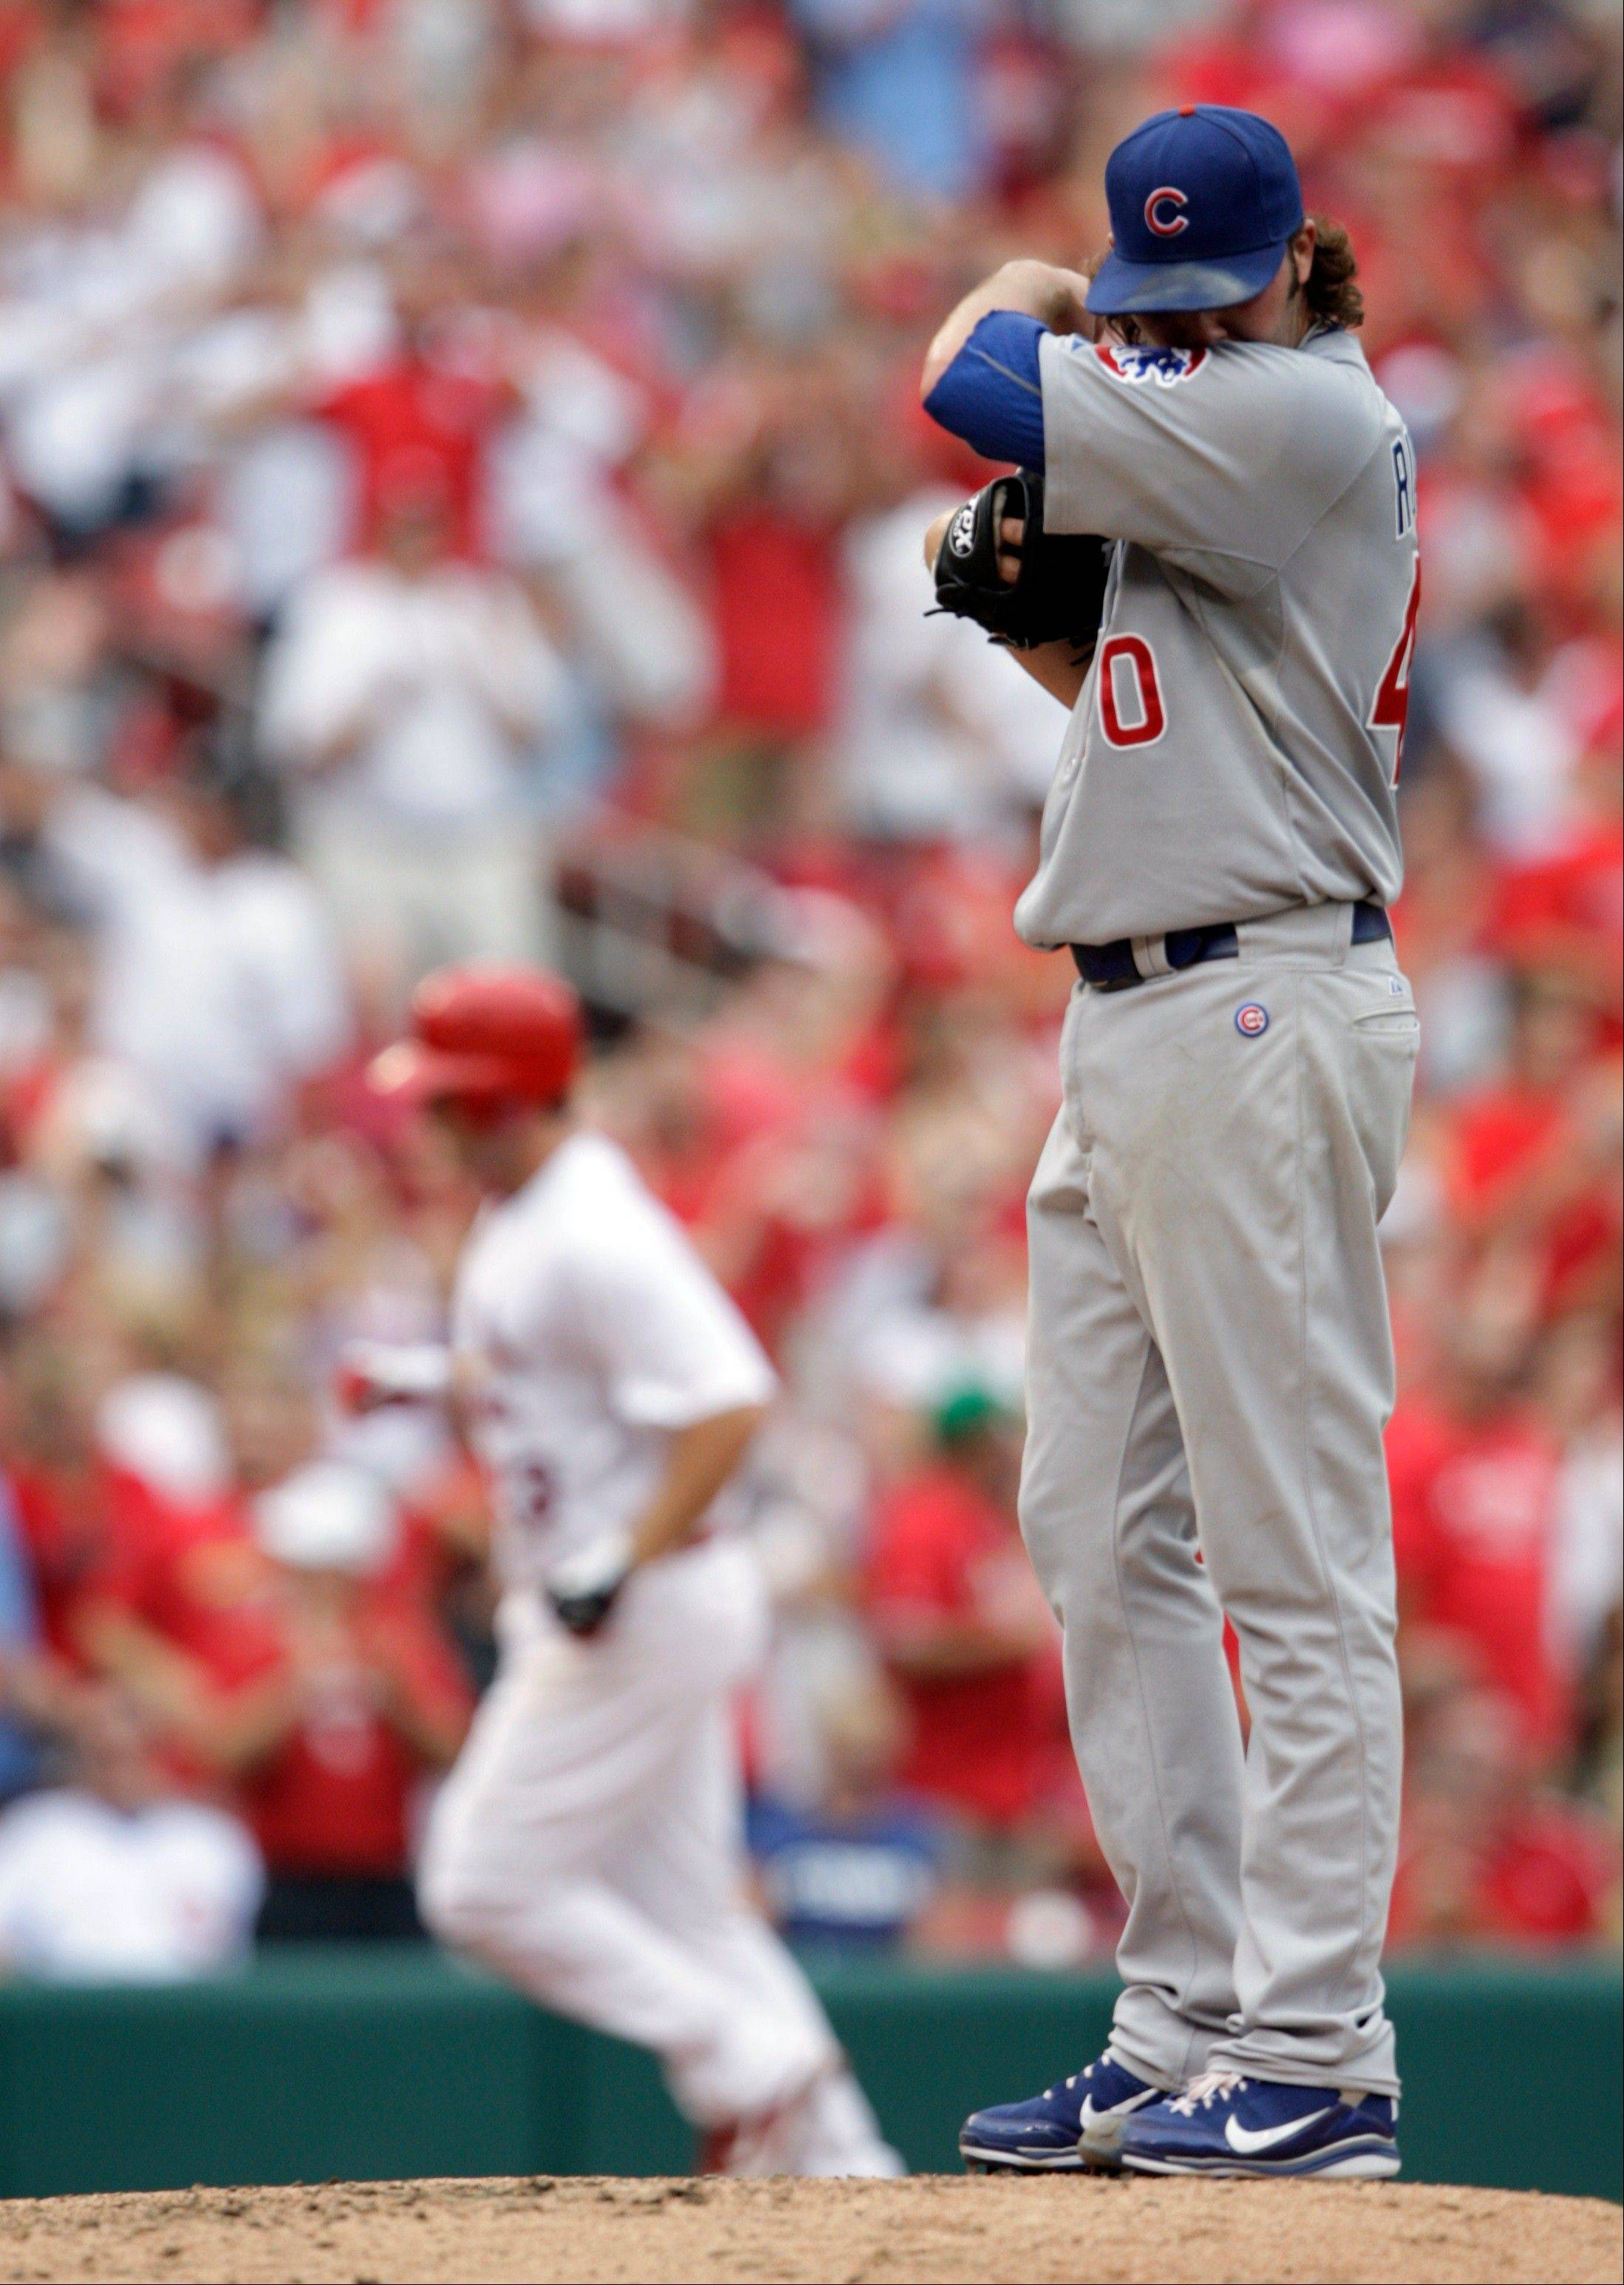 Cubs relief pitcher James Russell looks away as the Cardinals' David Freese circles the bases after hitting a 2-run homer Saturday.